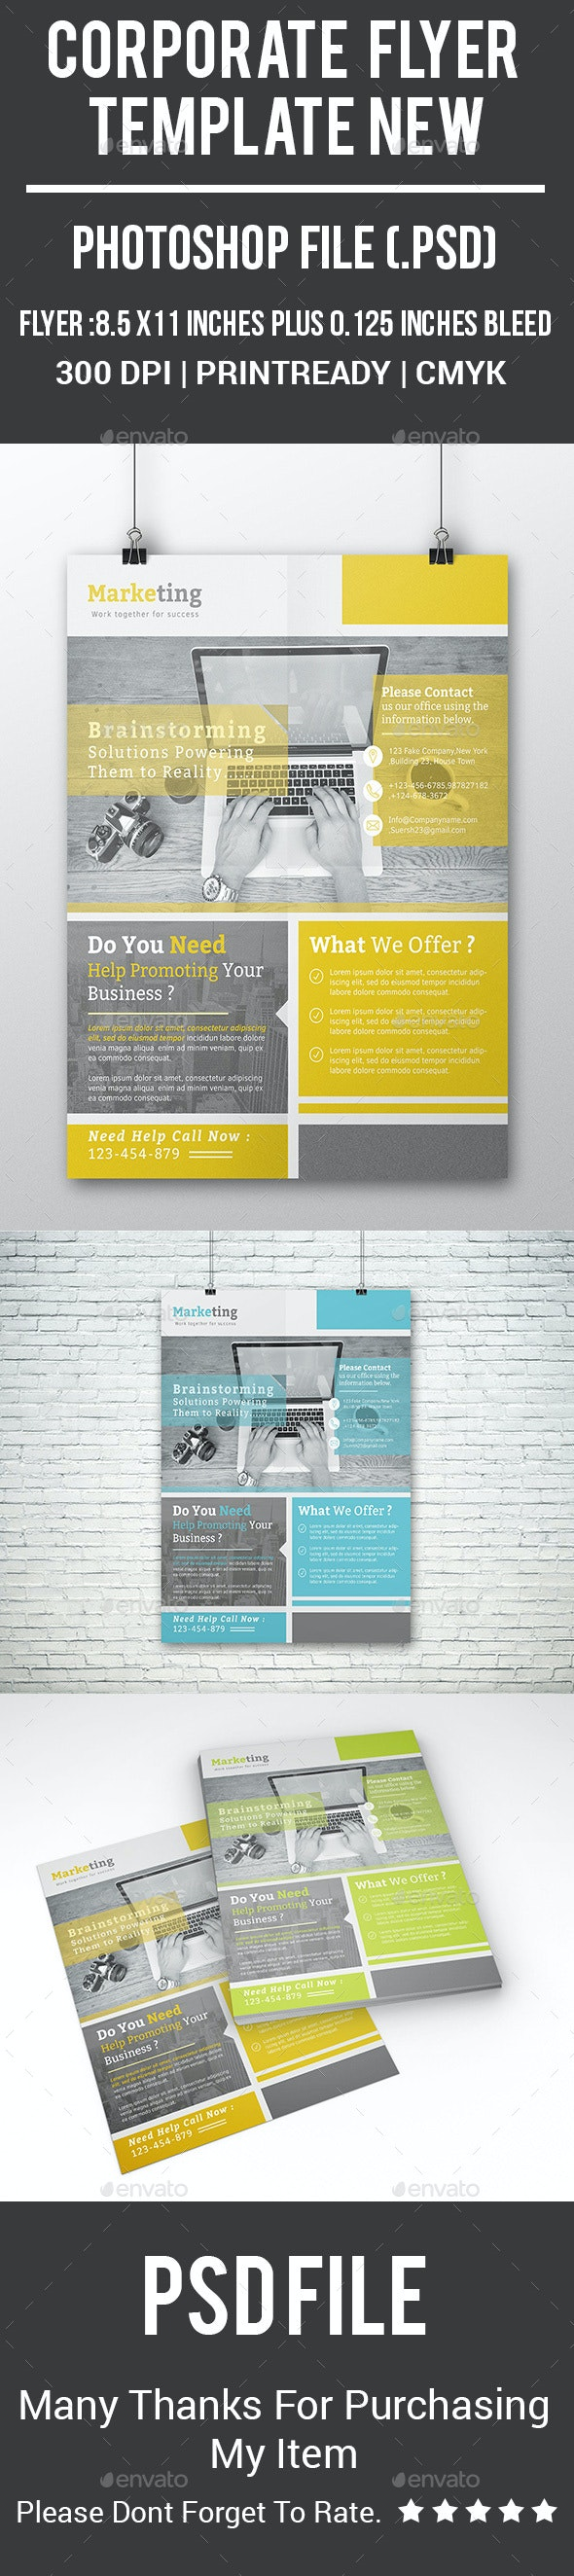 Corporate Flyer Template New - Corporate Flyers